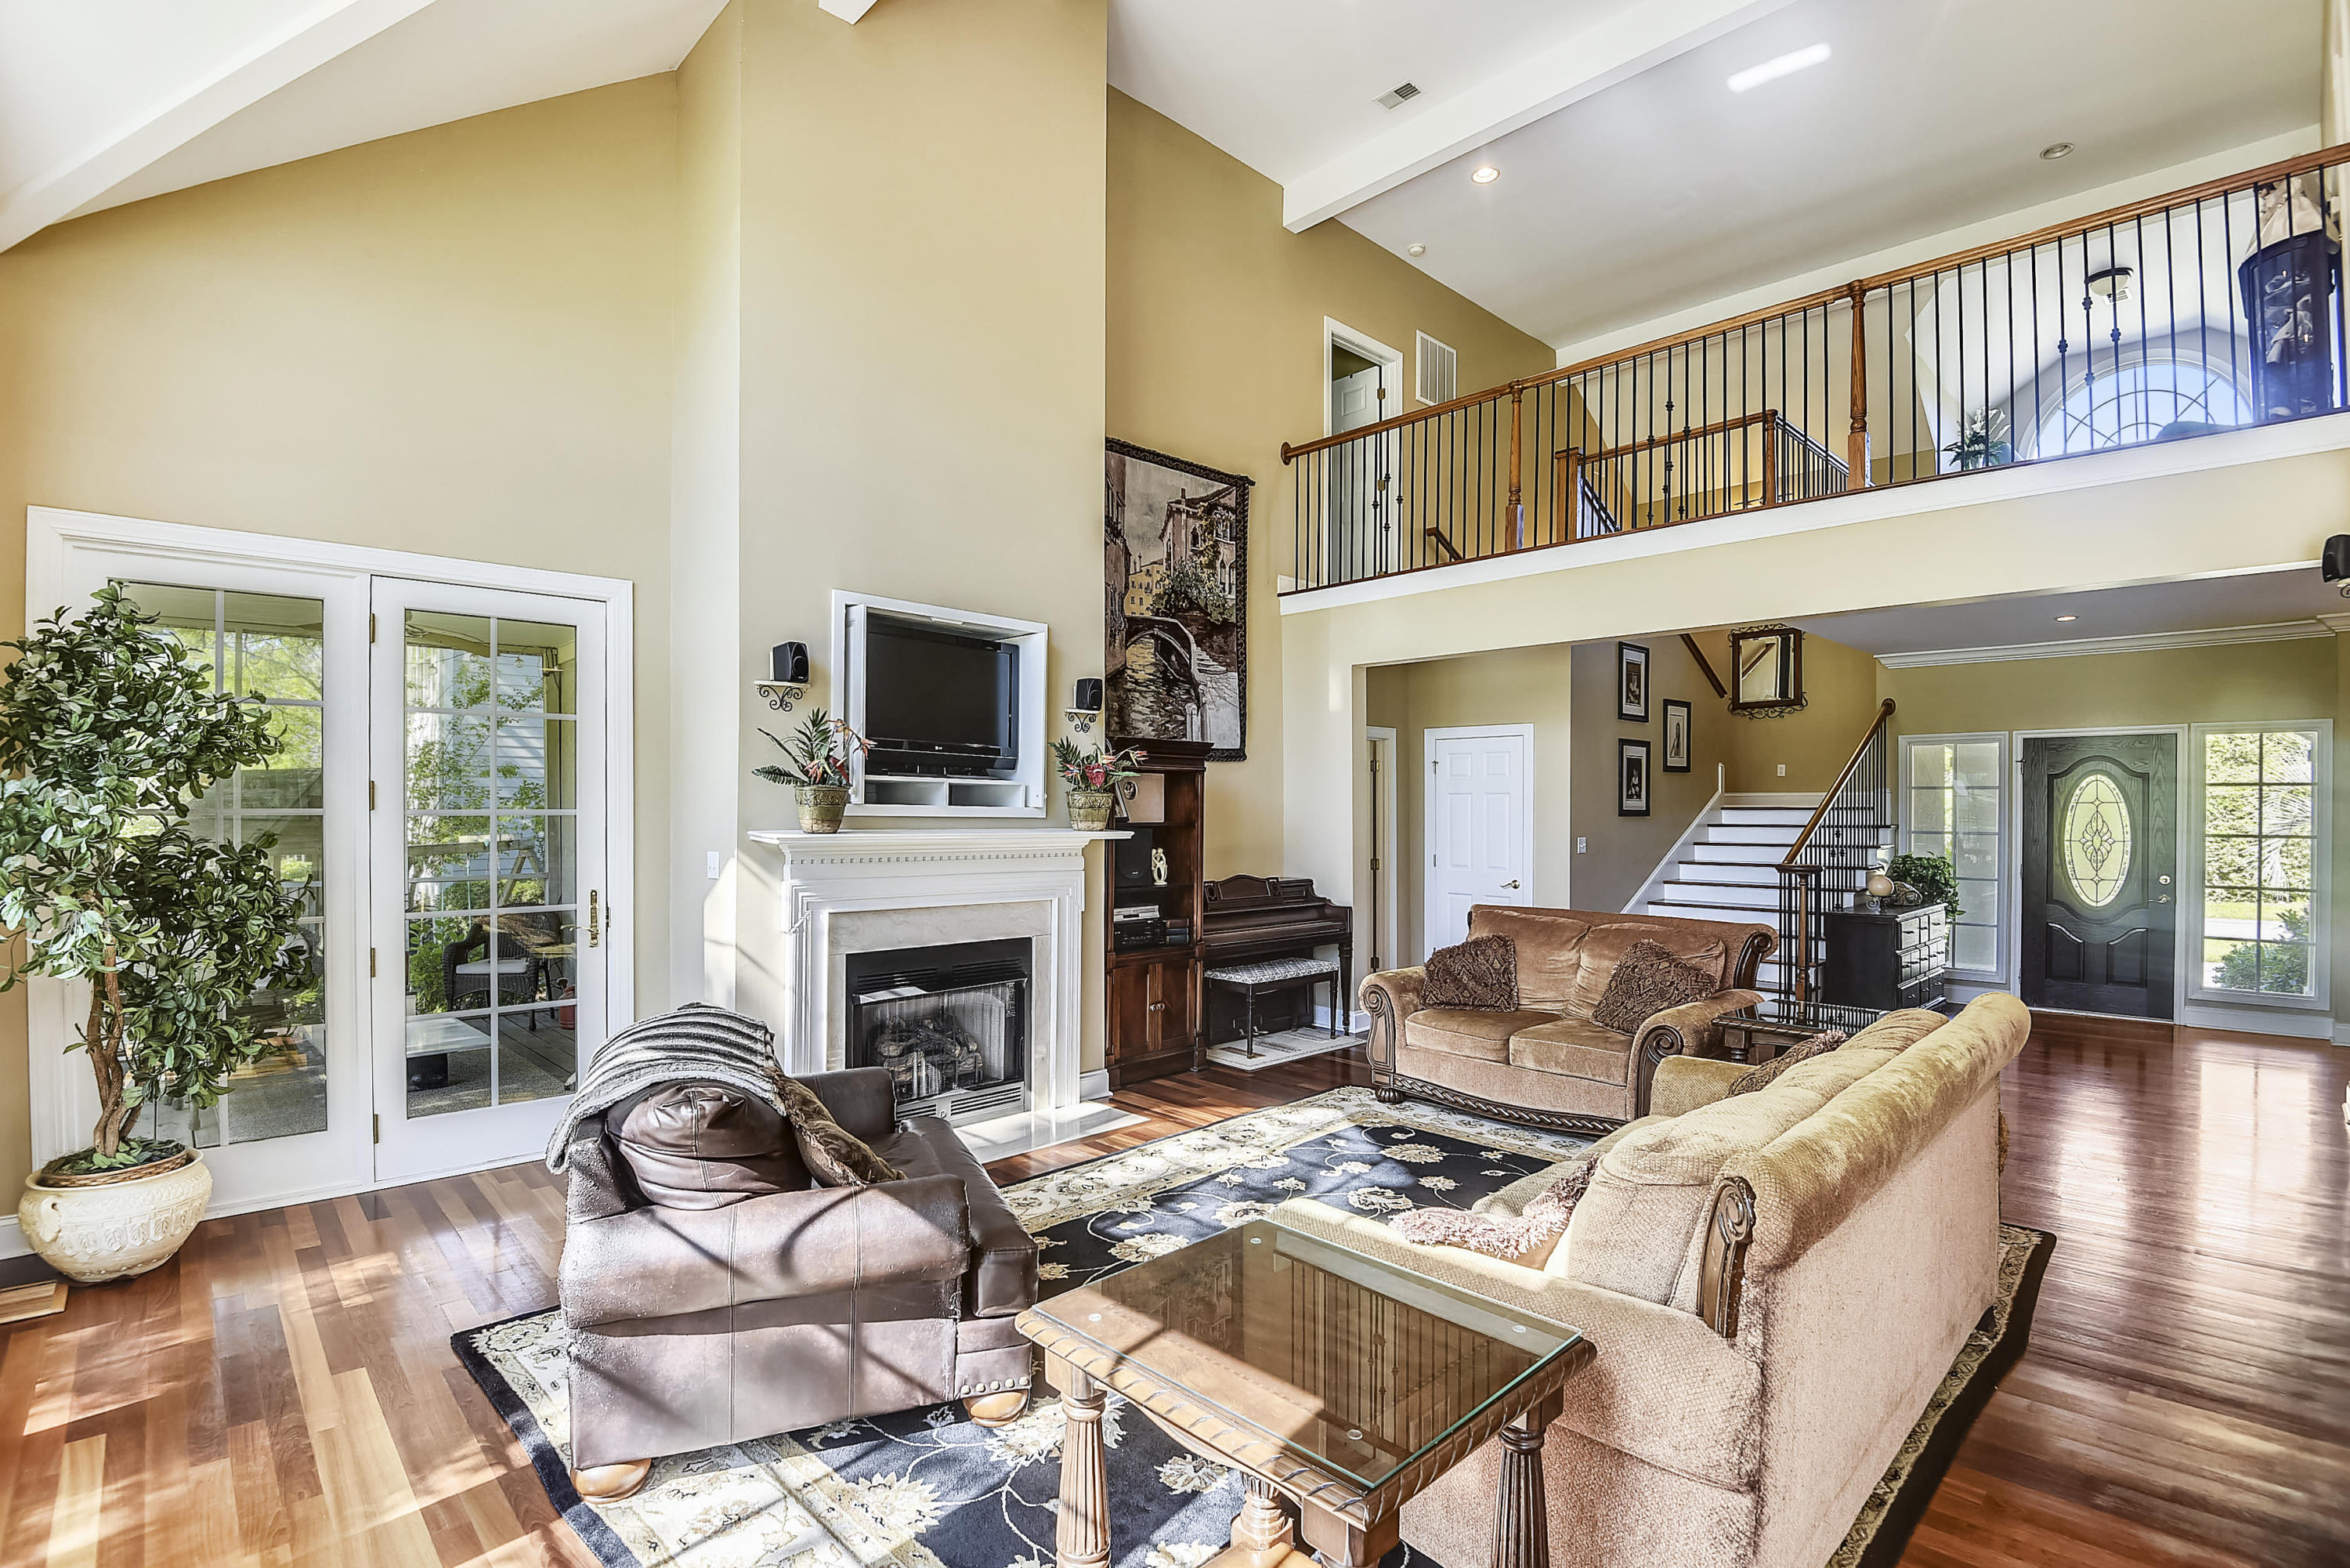 Coosaw Creek Country Club Homes For Sale - 8855 Fairway Woods, North Charleston, SC - 51